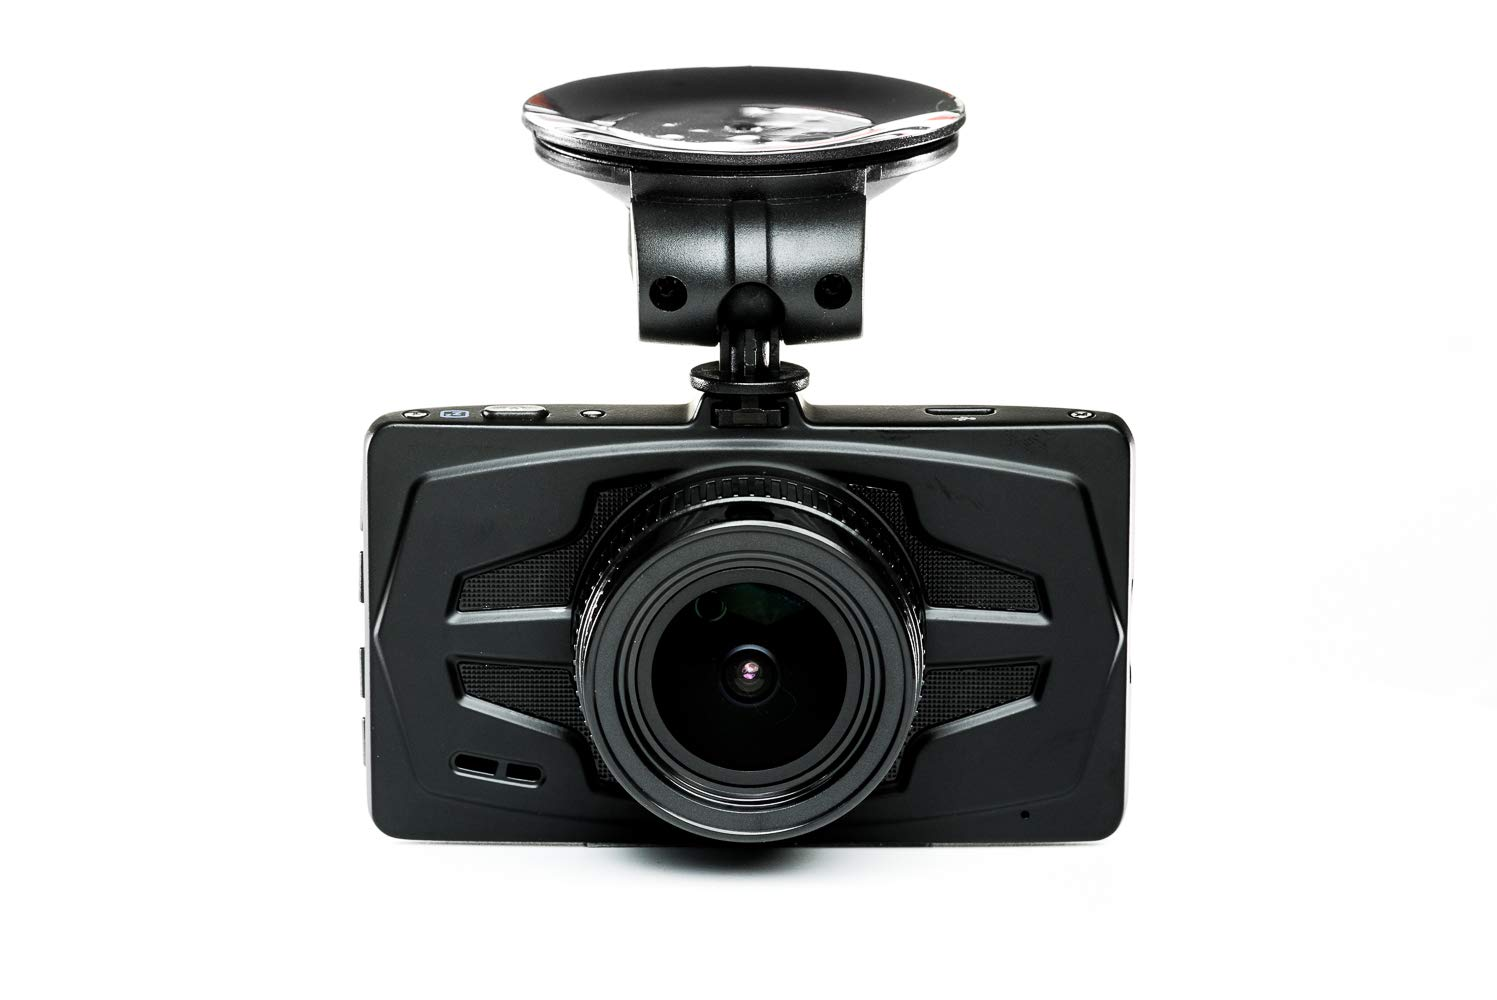 RSC Duduo e1 2 Channel 1080P Sony Starvis Ultra Night Vision 3.0 LCD f1.6 Lens Dashcam